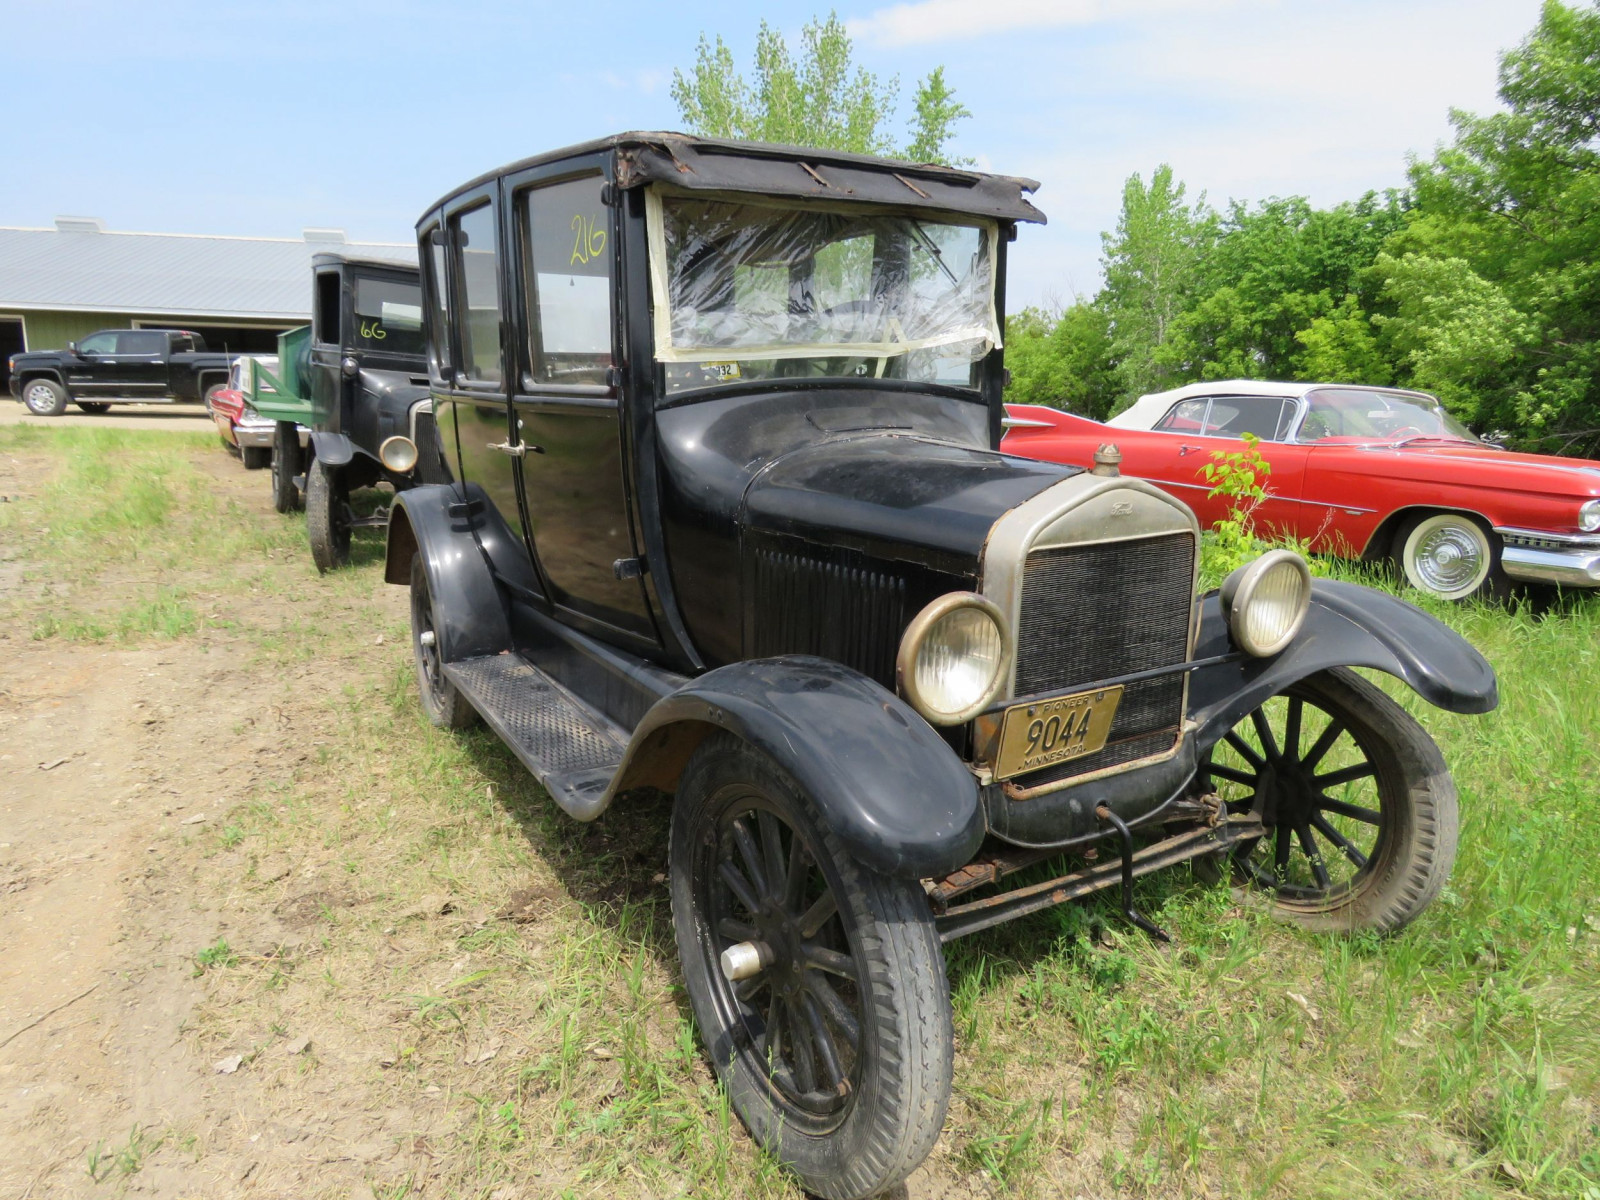 Ford Model T 4dr Sedan - Image 1